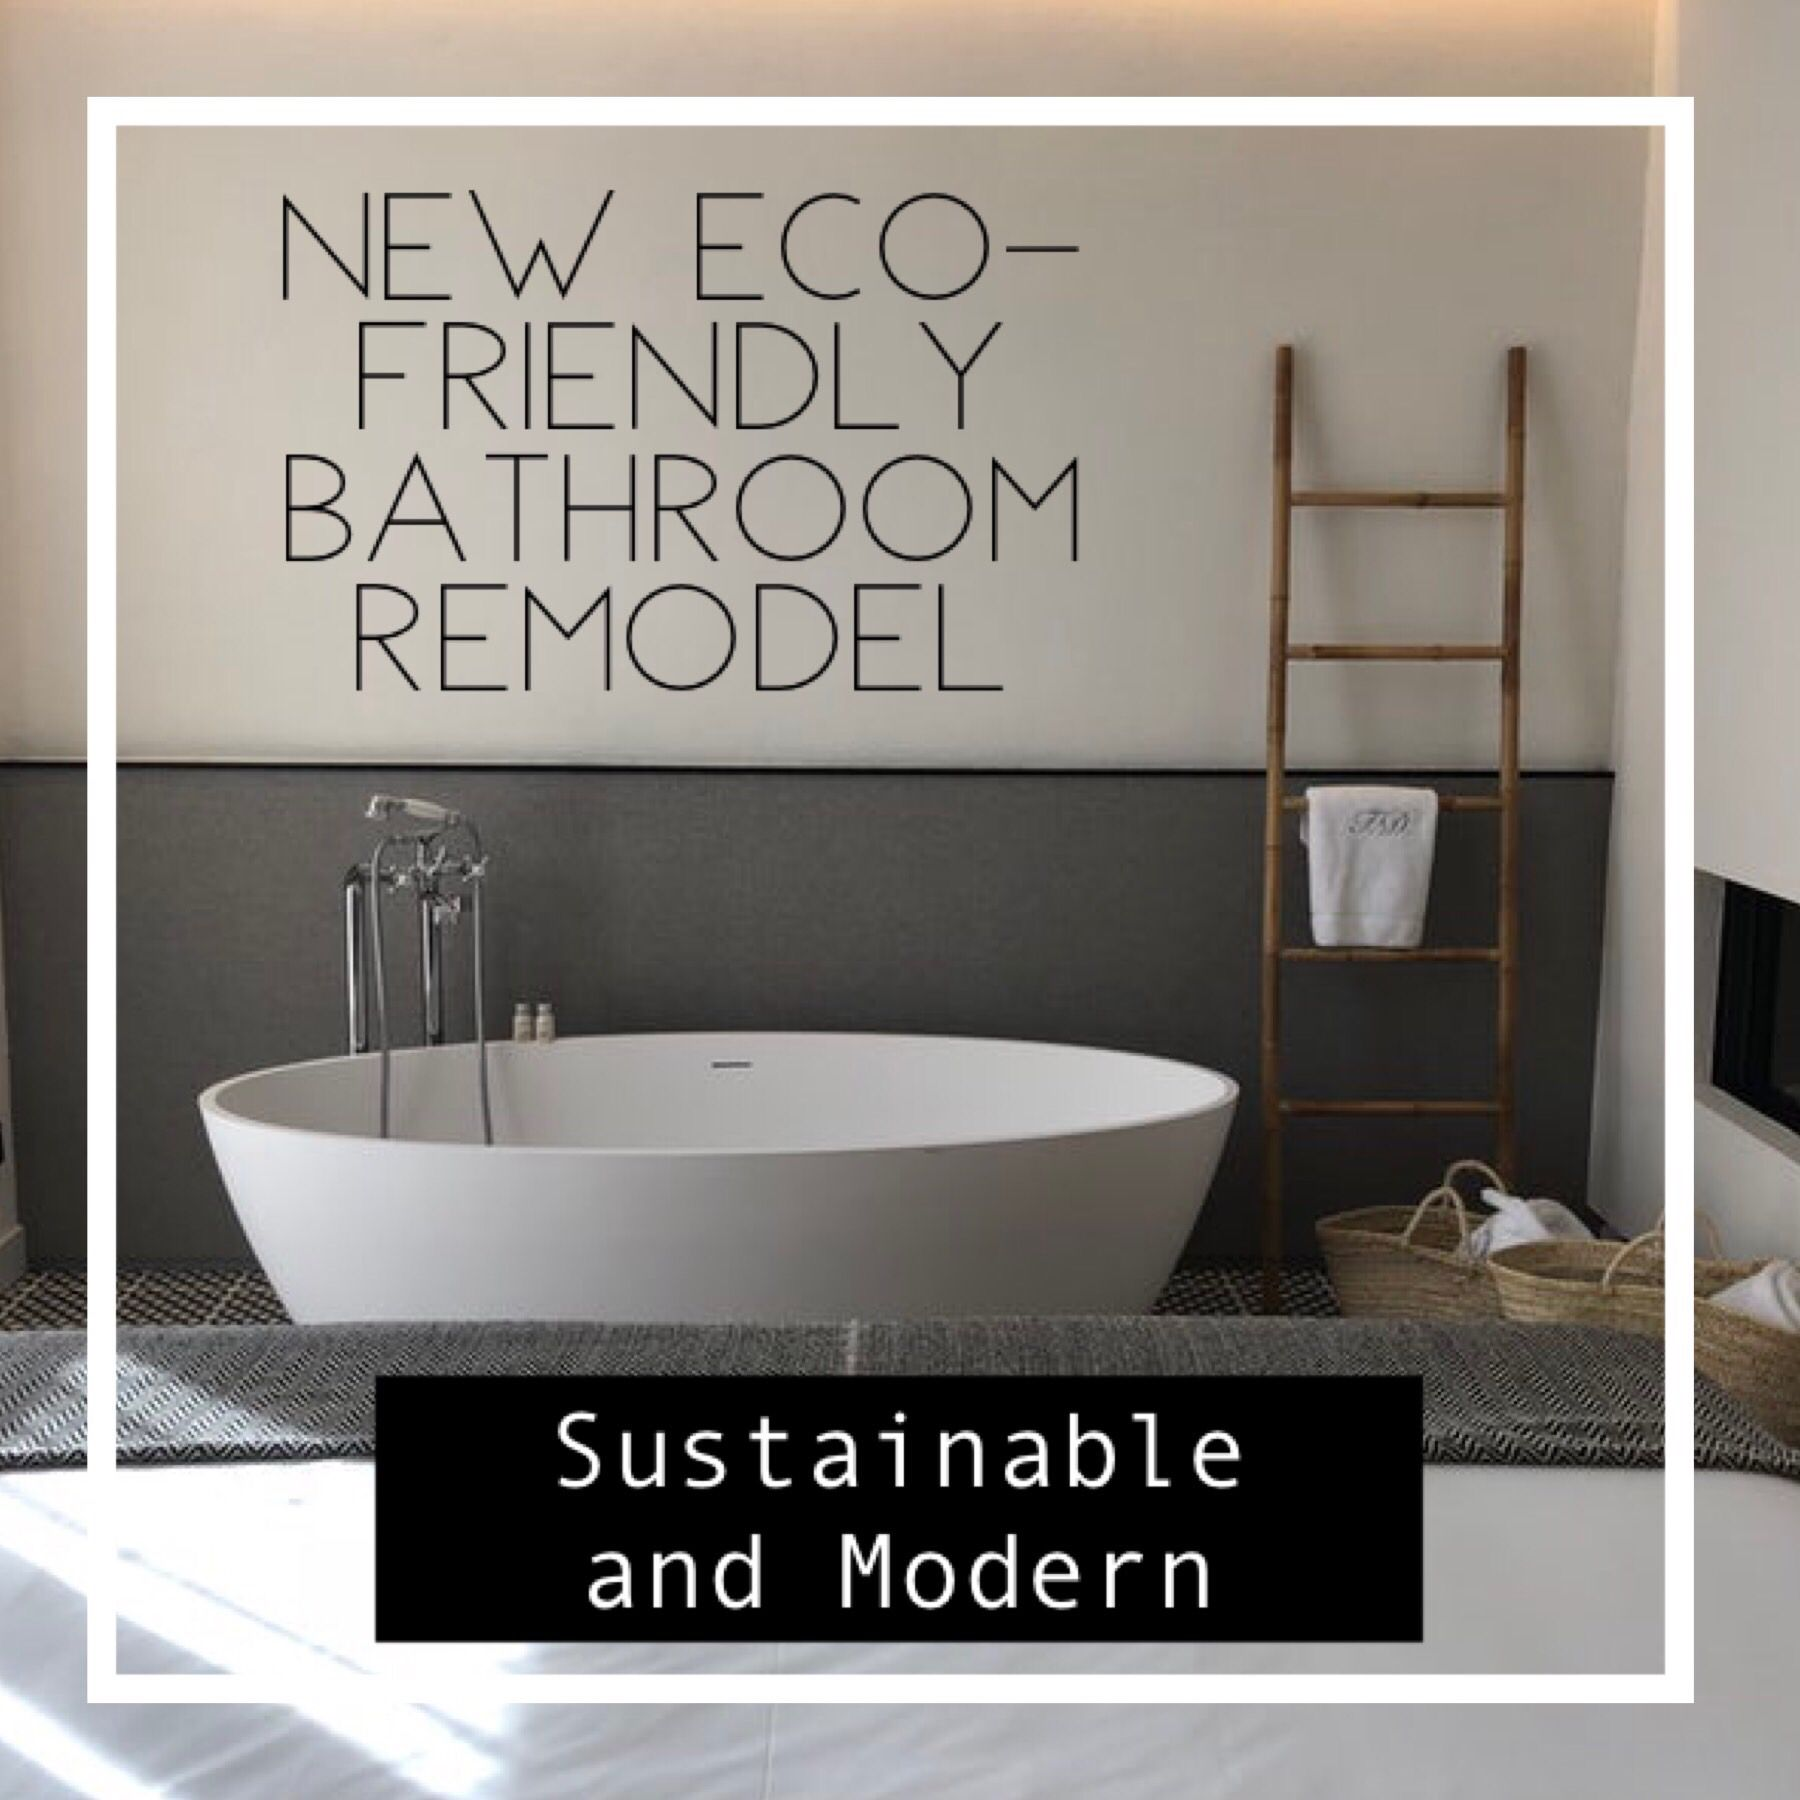 New Eco Friendly Bathroom Sustainable And Modern Products Eco Friendly Toilet Bathrooms Remodel Vinyl Shower Curtains